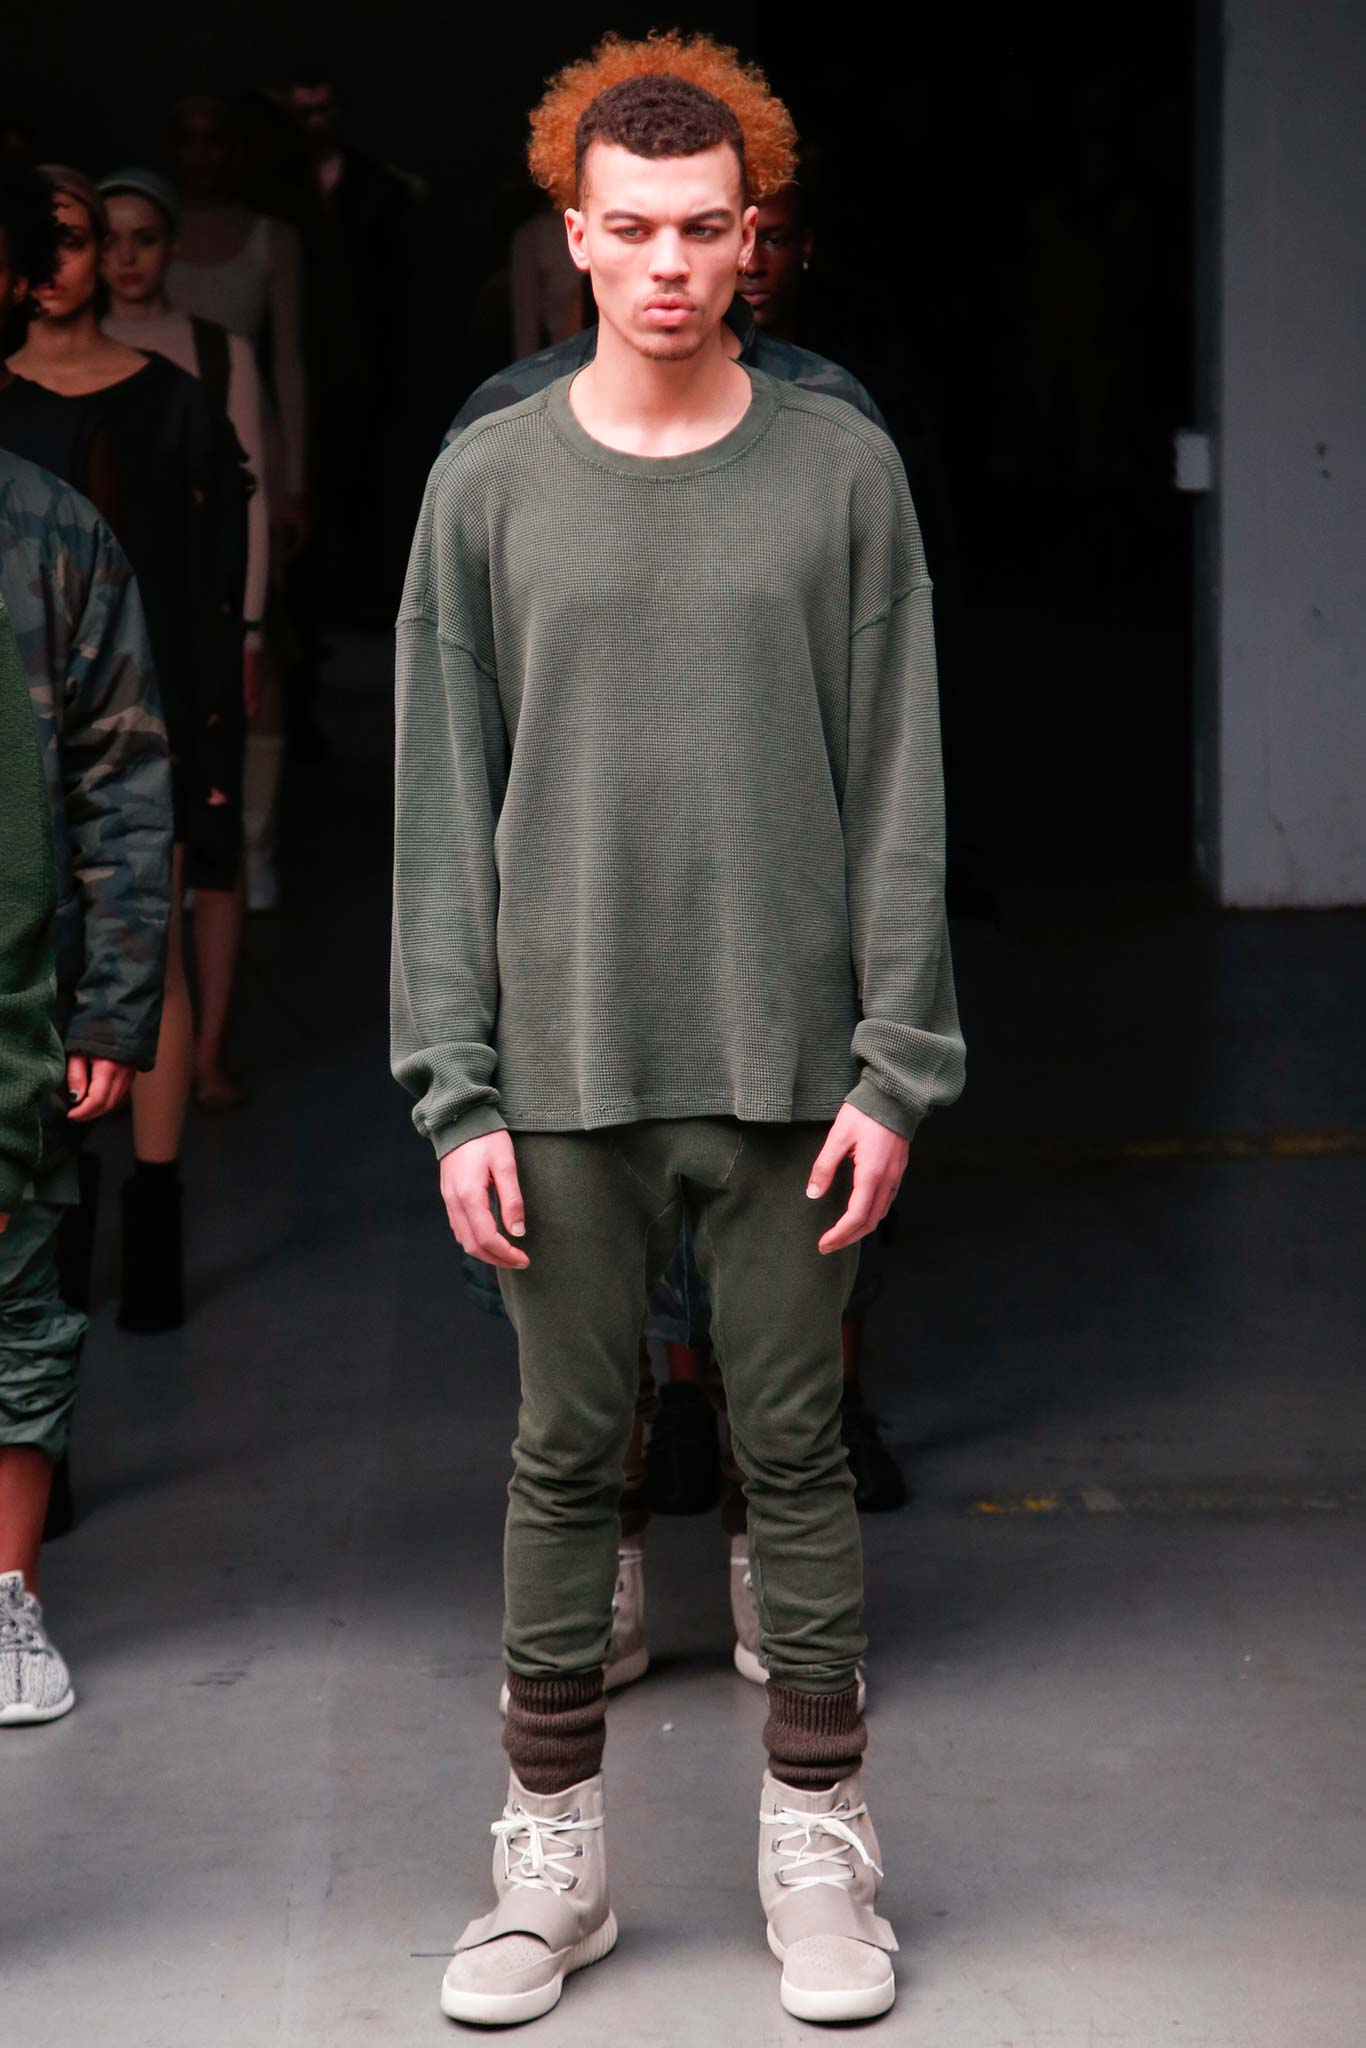 Kanye West Fashion Show Review